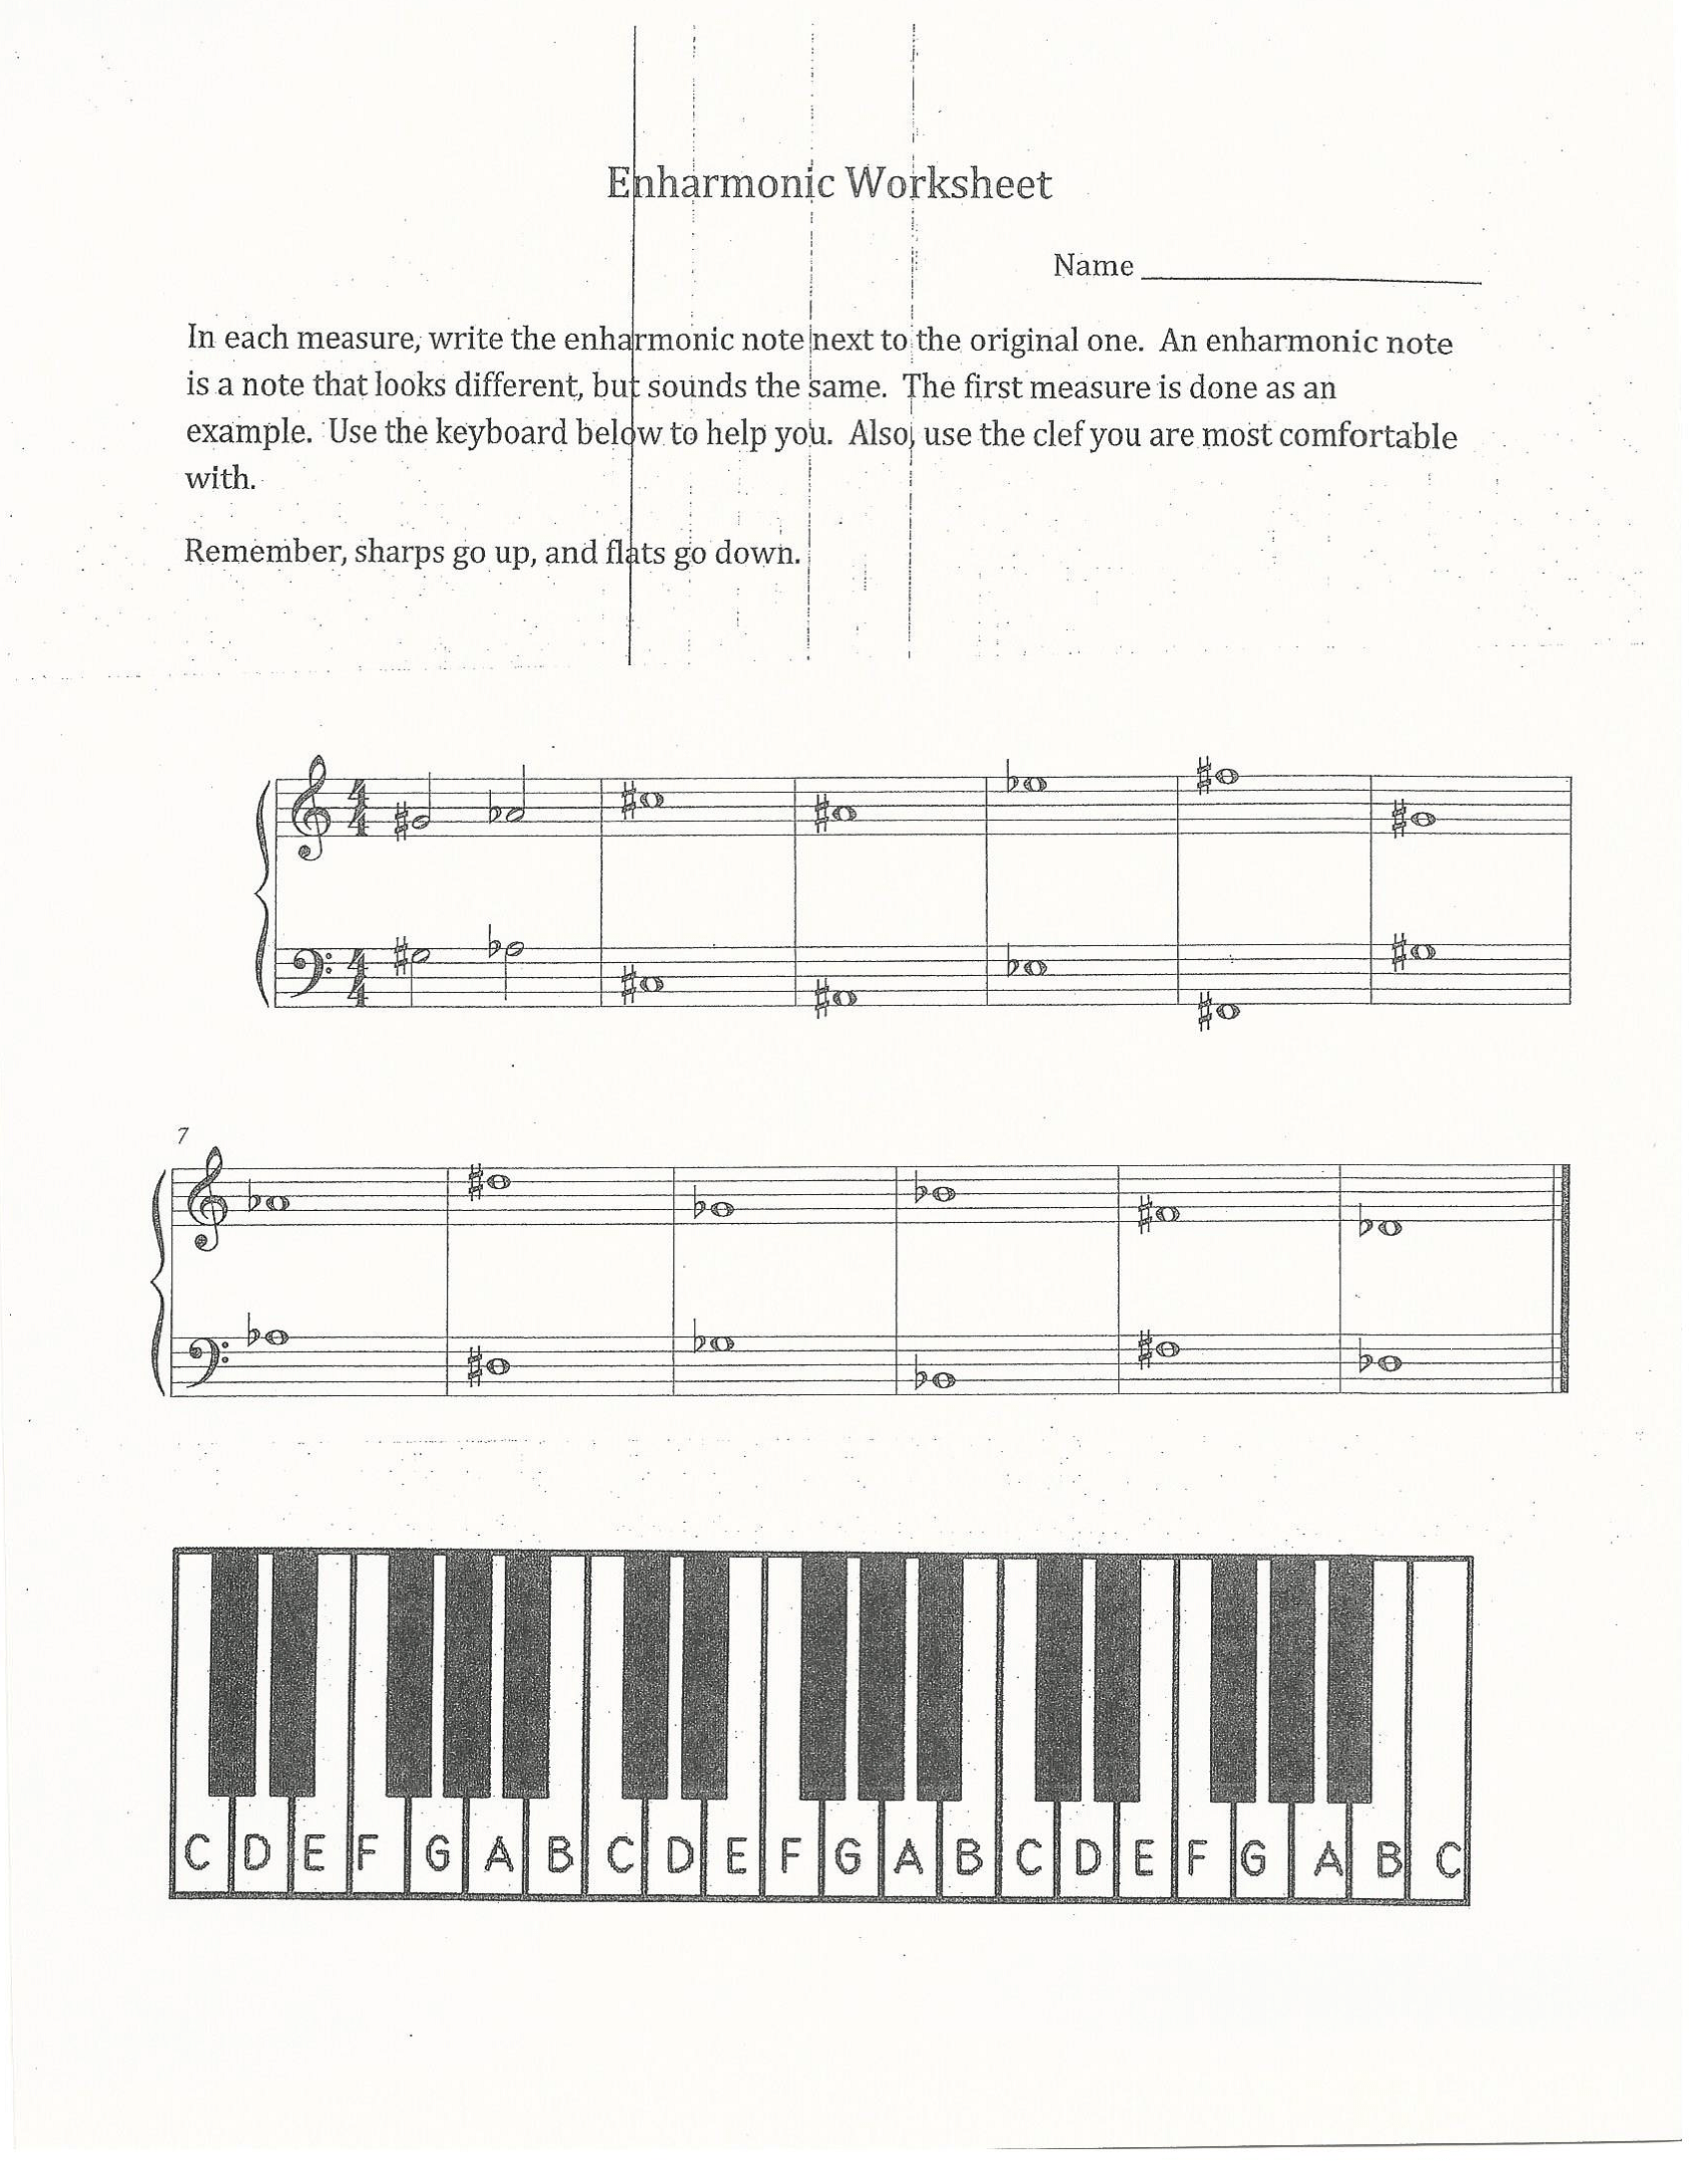 Enharmonic Worksheet I Created This Worksheet To Teach 6th And 7th Graders About Enharmonics